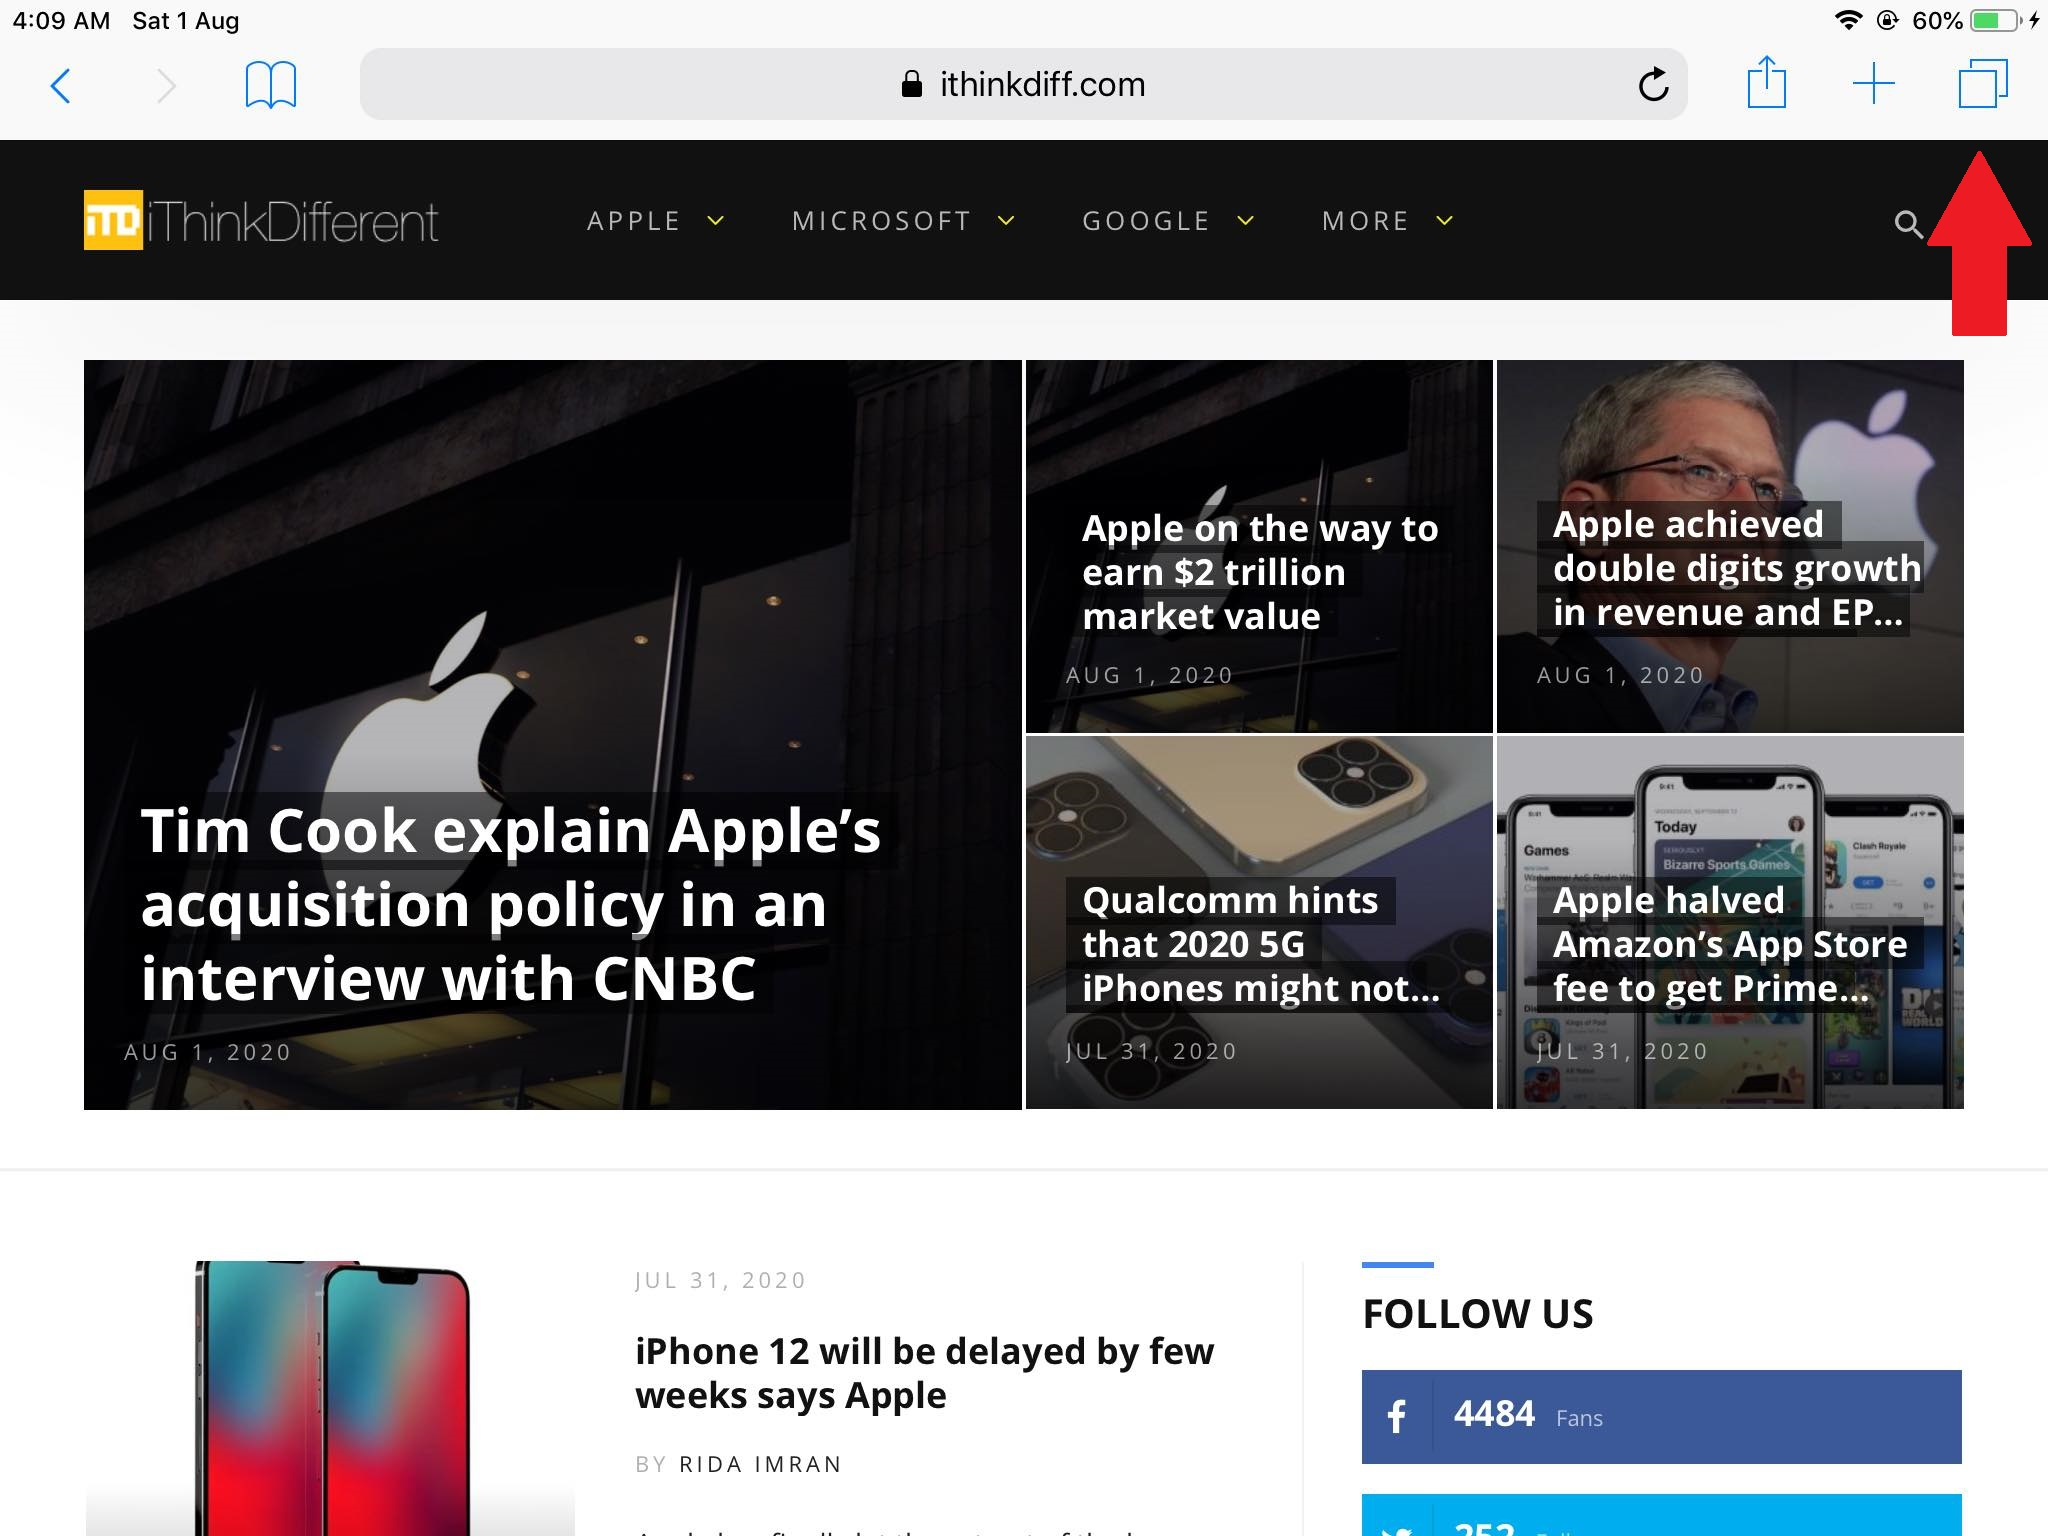 How to use Safari private browsing mode on an iPhone or iPad